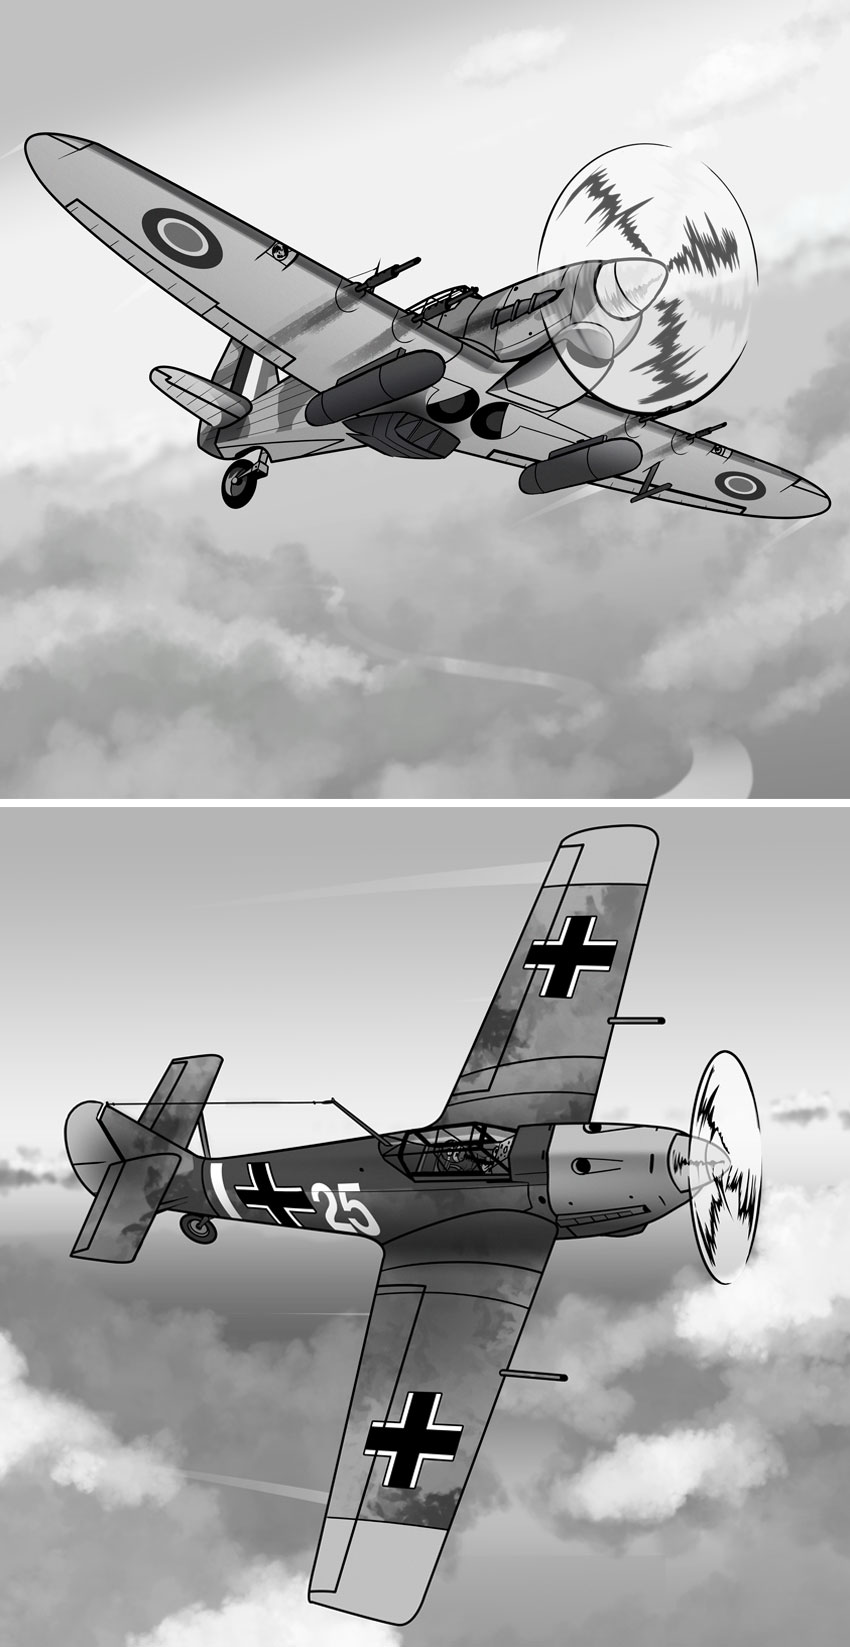 The Spitfire had companions like the Hurricane top and rivals like the Messerschmitt bottom